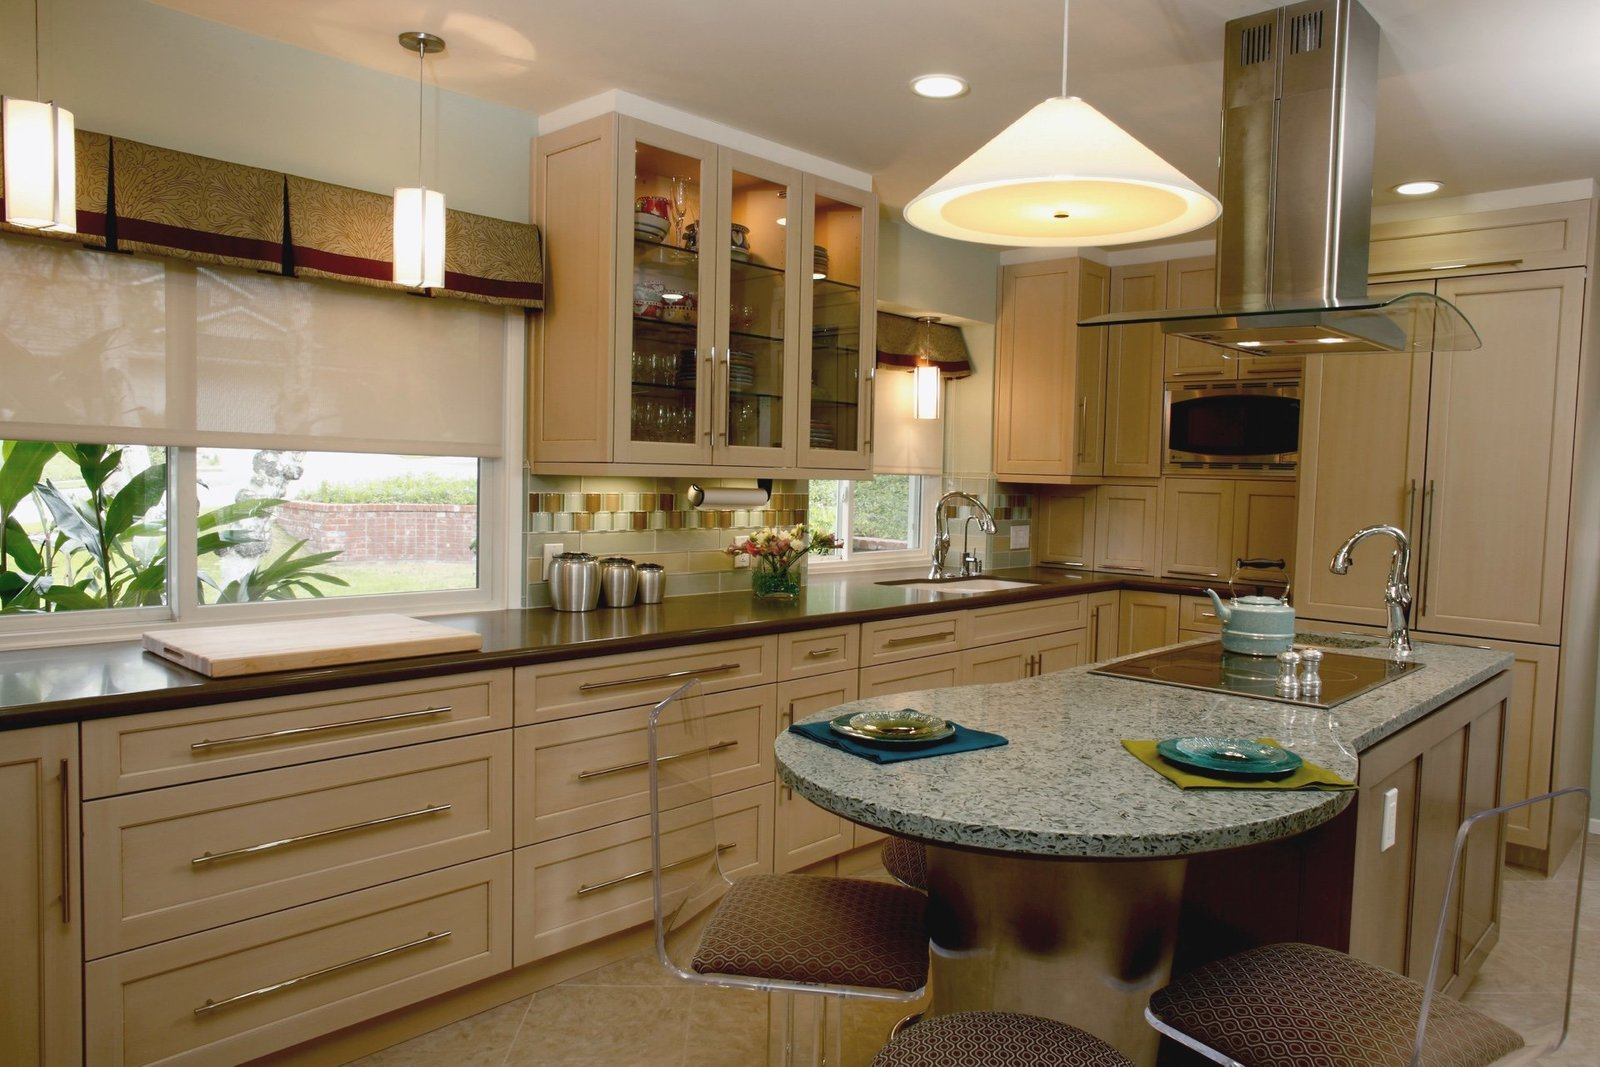 Cook's Kitchen Ivory Cabinetry